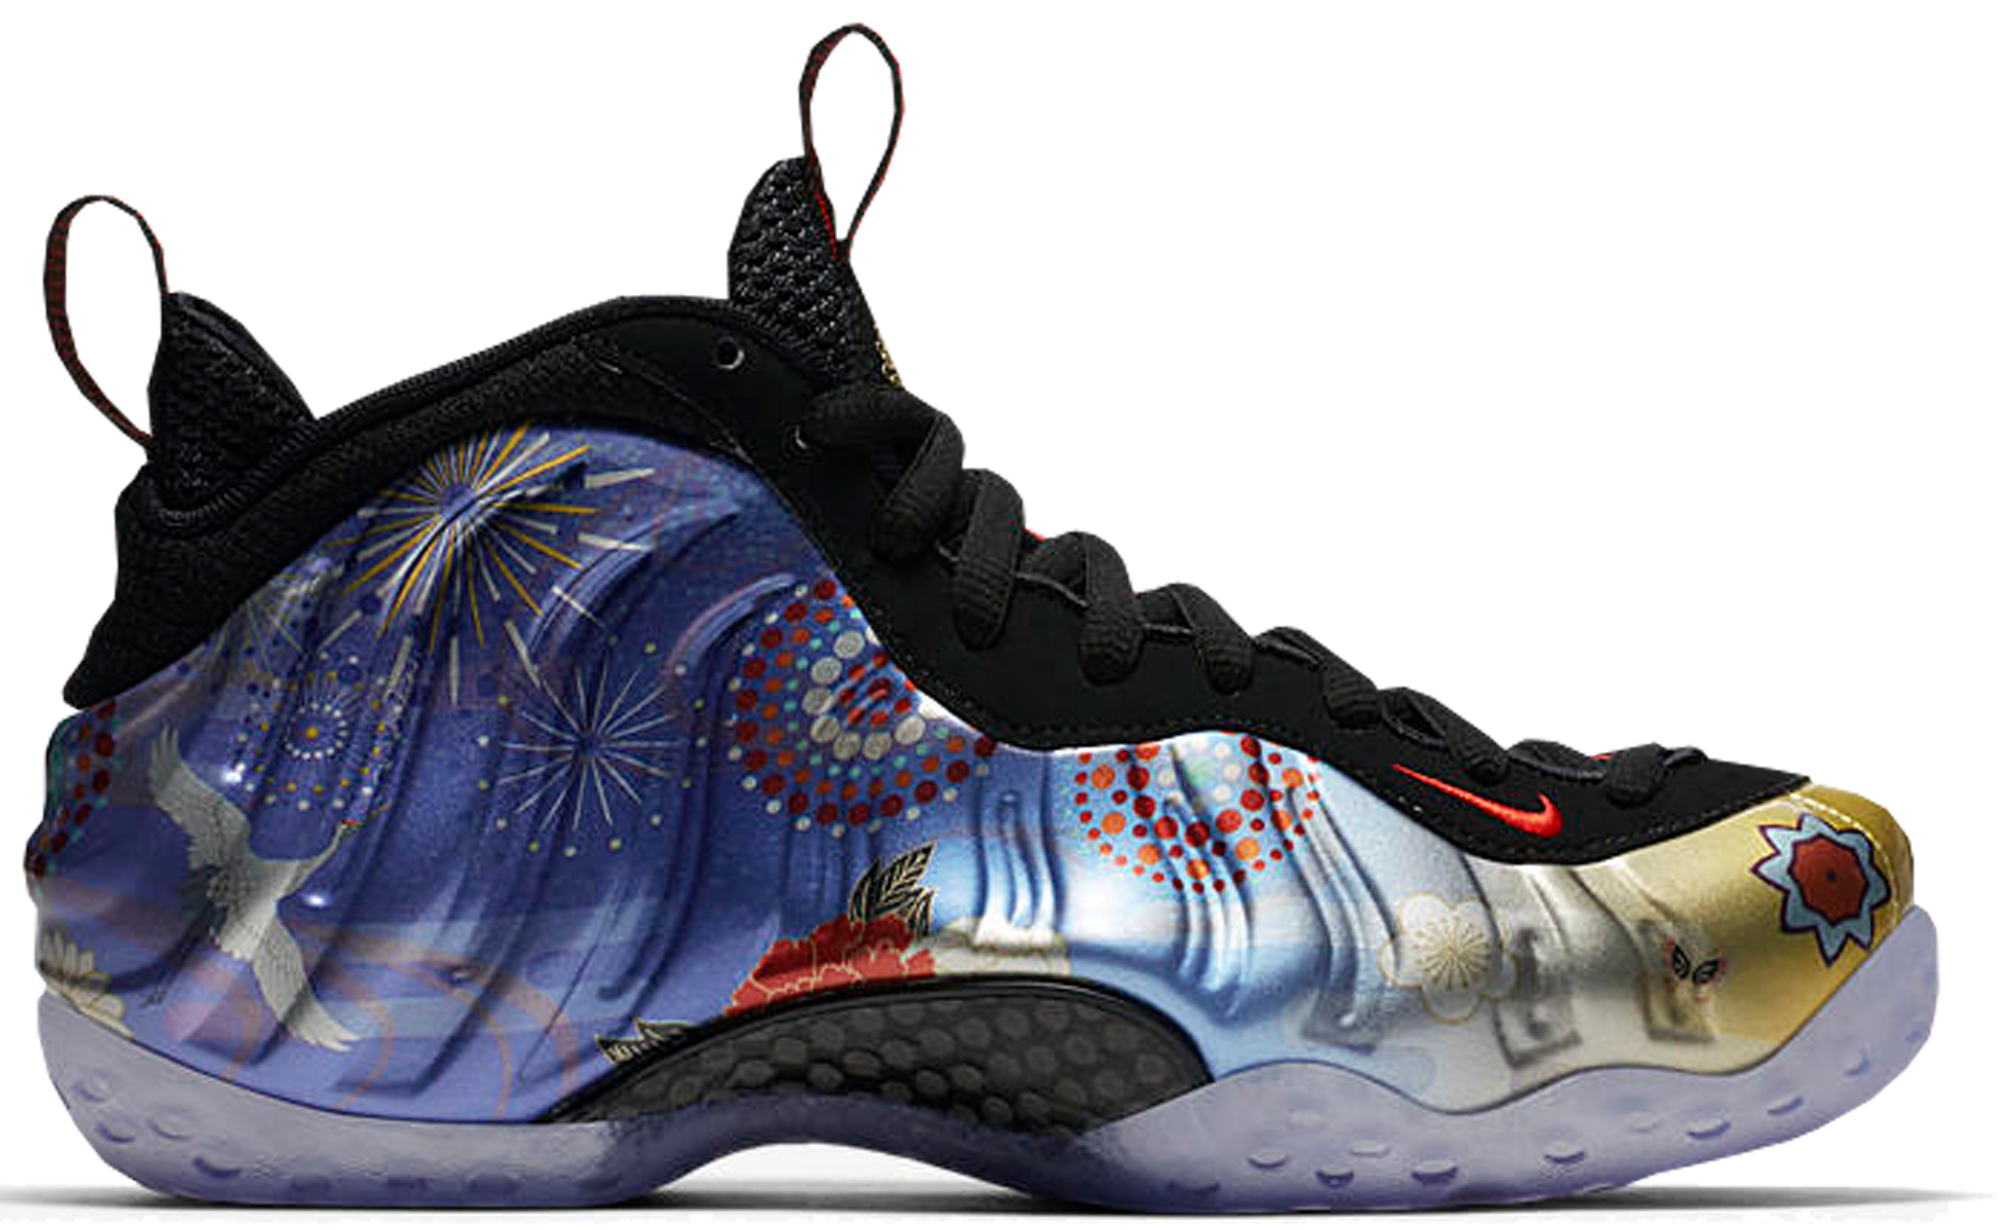 Nike Air Foamposite One Abalone Debuting In January ...